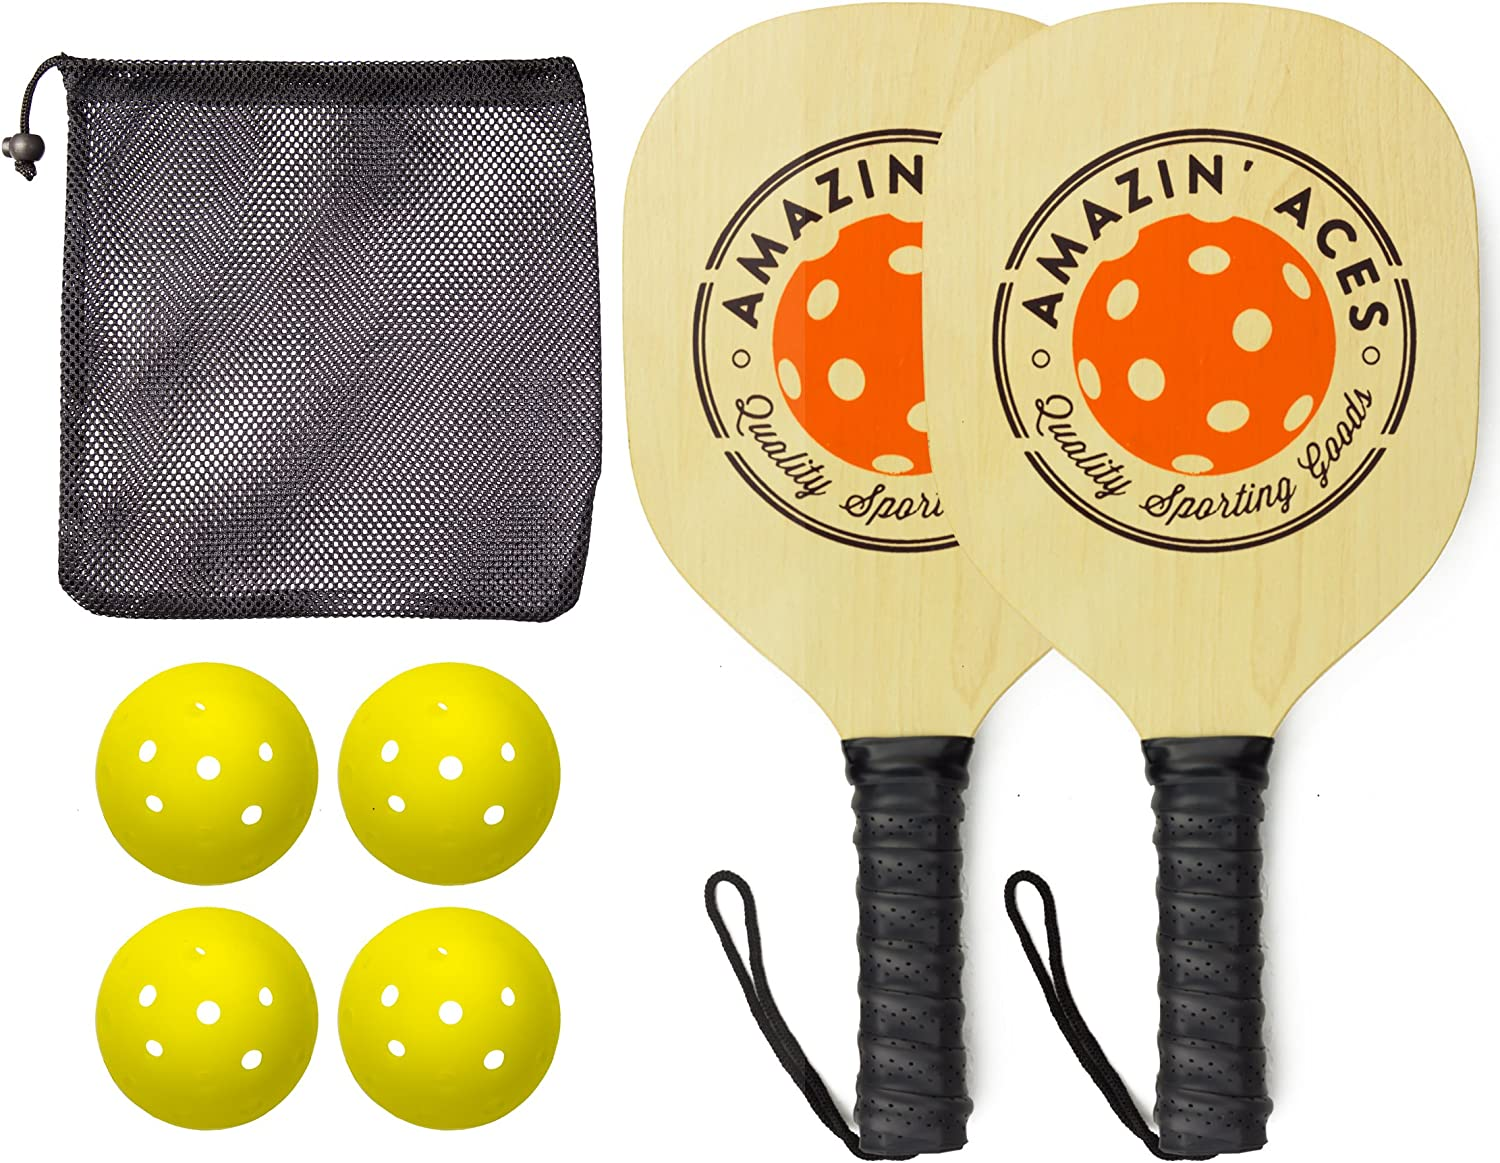 Amazin' Aces Pickleball Paddle Set Pickleball Set Includes 2 Wood Pickleball Paddles, 4 Pickleballs, 1 Carry Bag & Guaranteed Fun! | Beginner-Intermediate Racket | Includes Free eBook : Sports & Outdoors